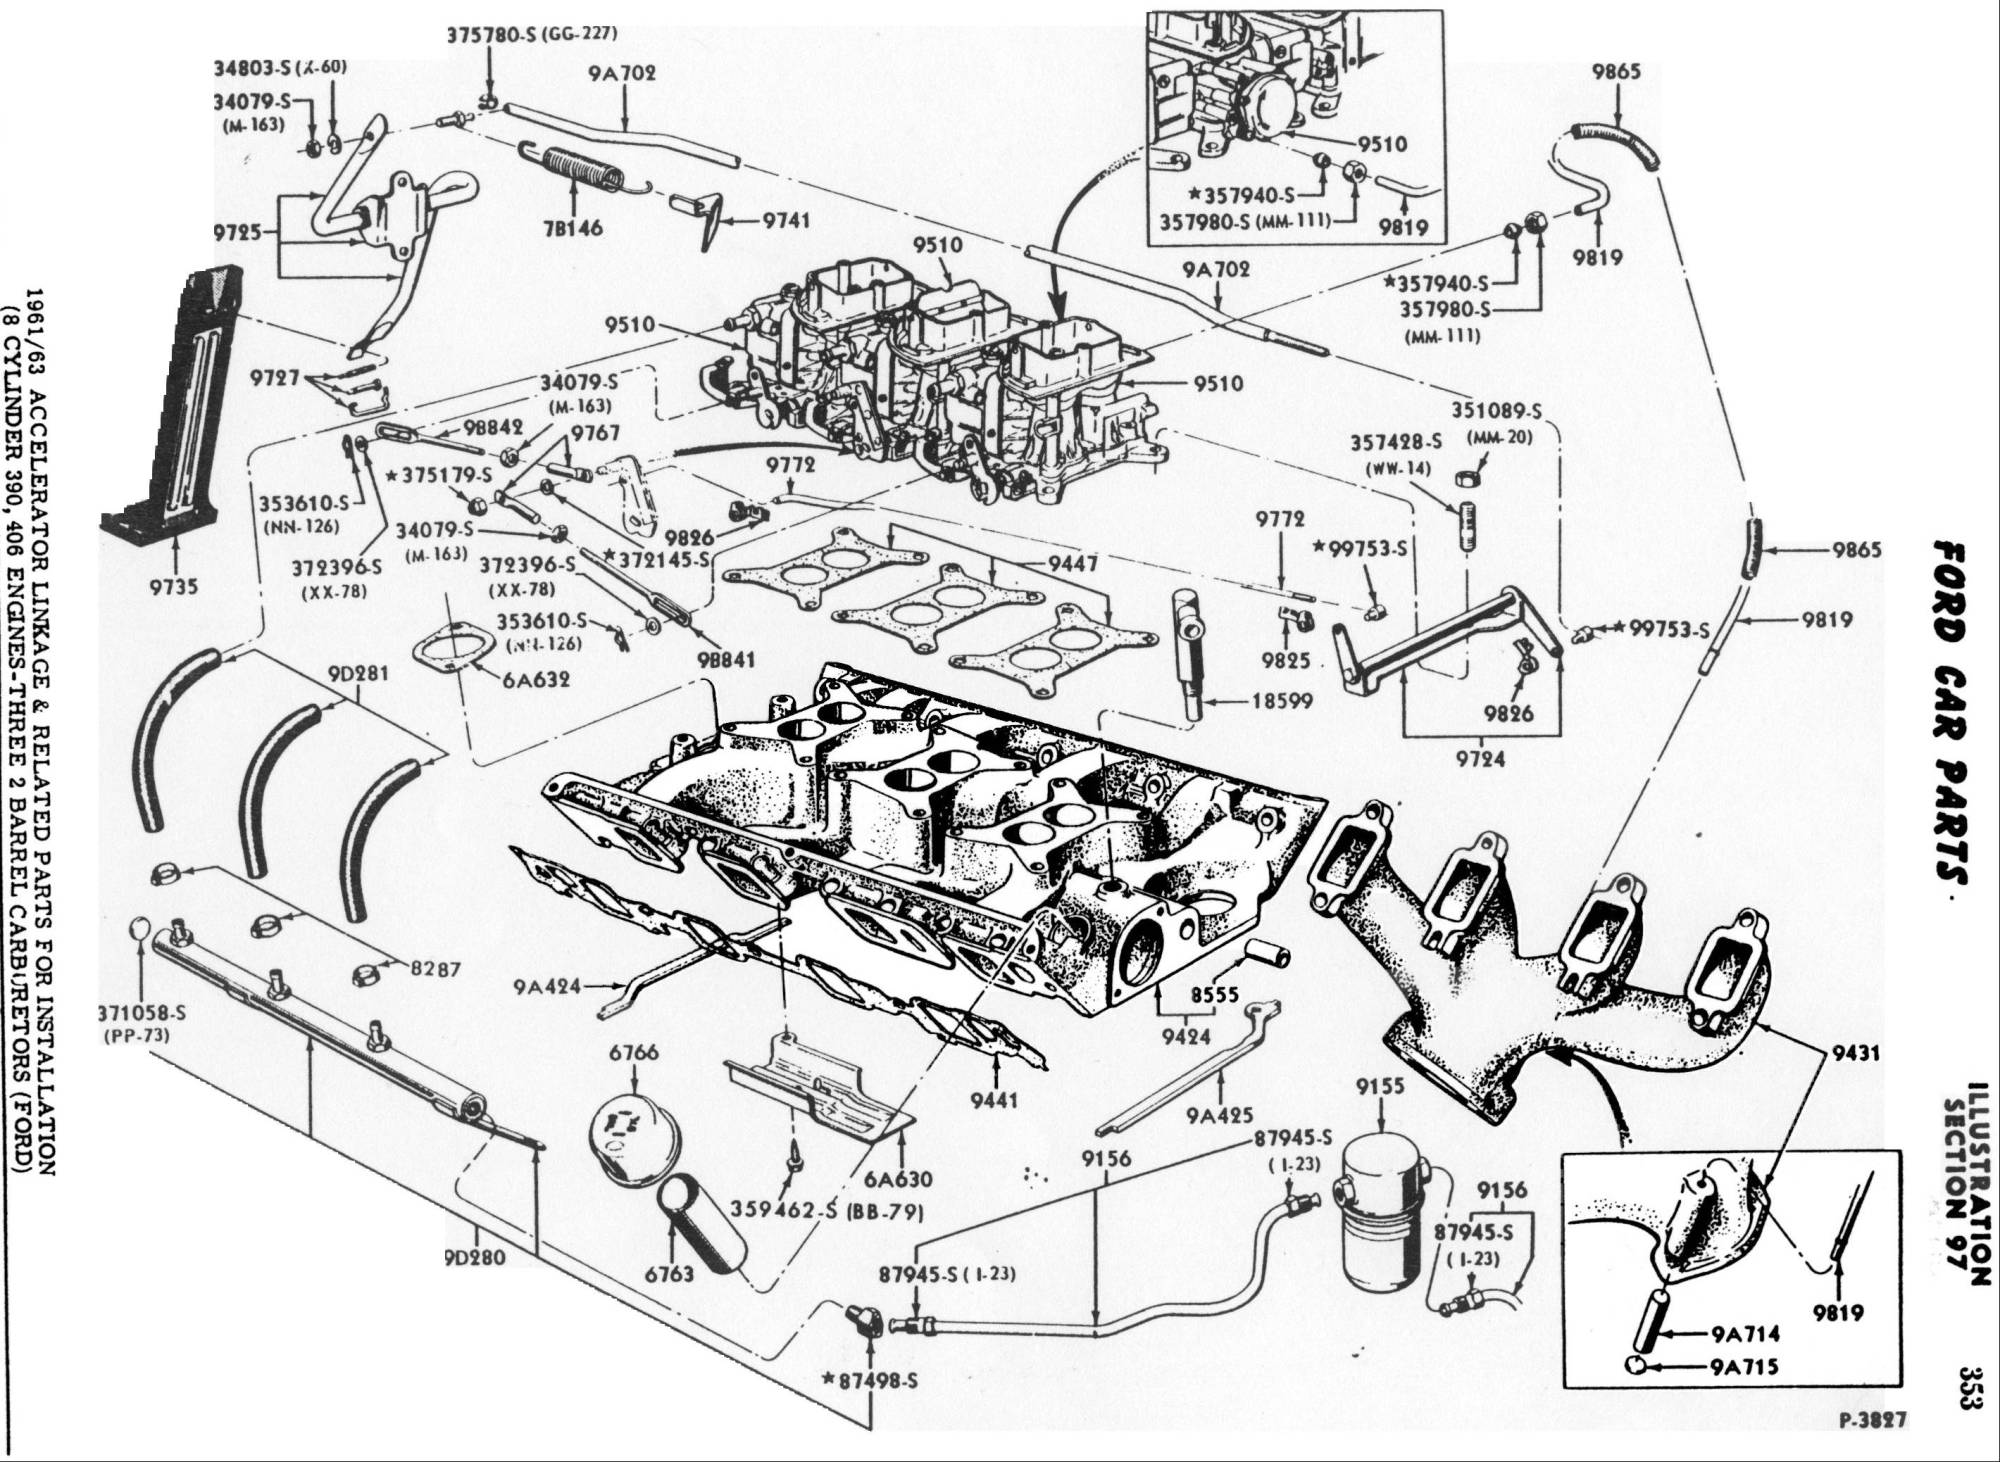 hight resolution of 302 ford marine wiring diagrams wiring library 1987 mustang wiring diagram 302 ford marine wiring diagrams